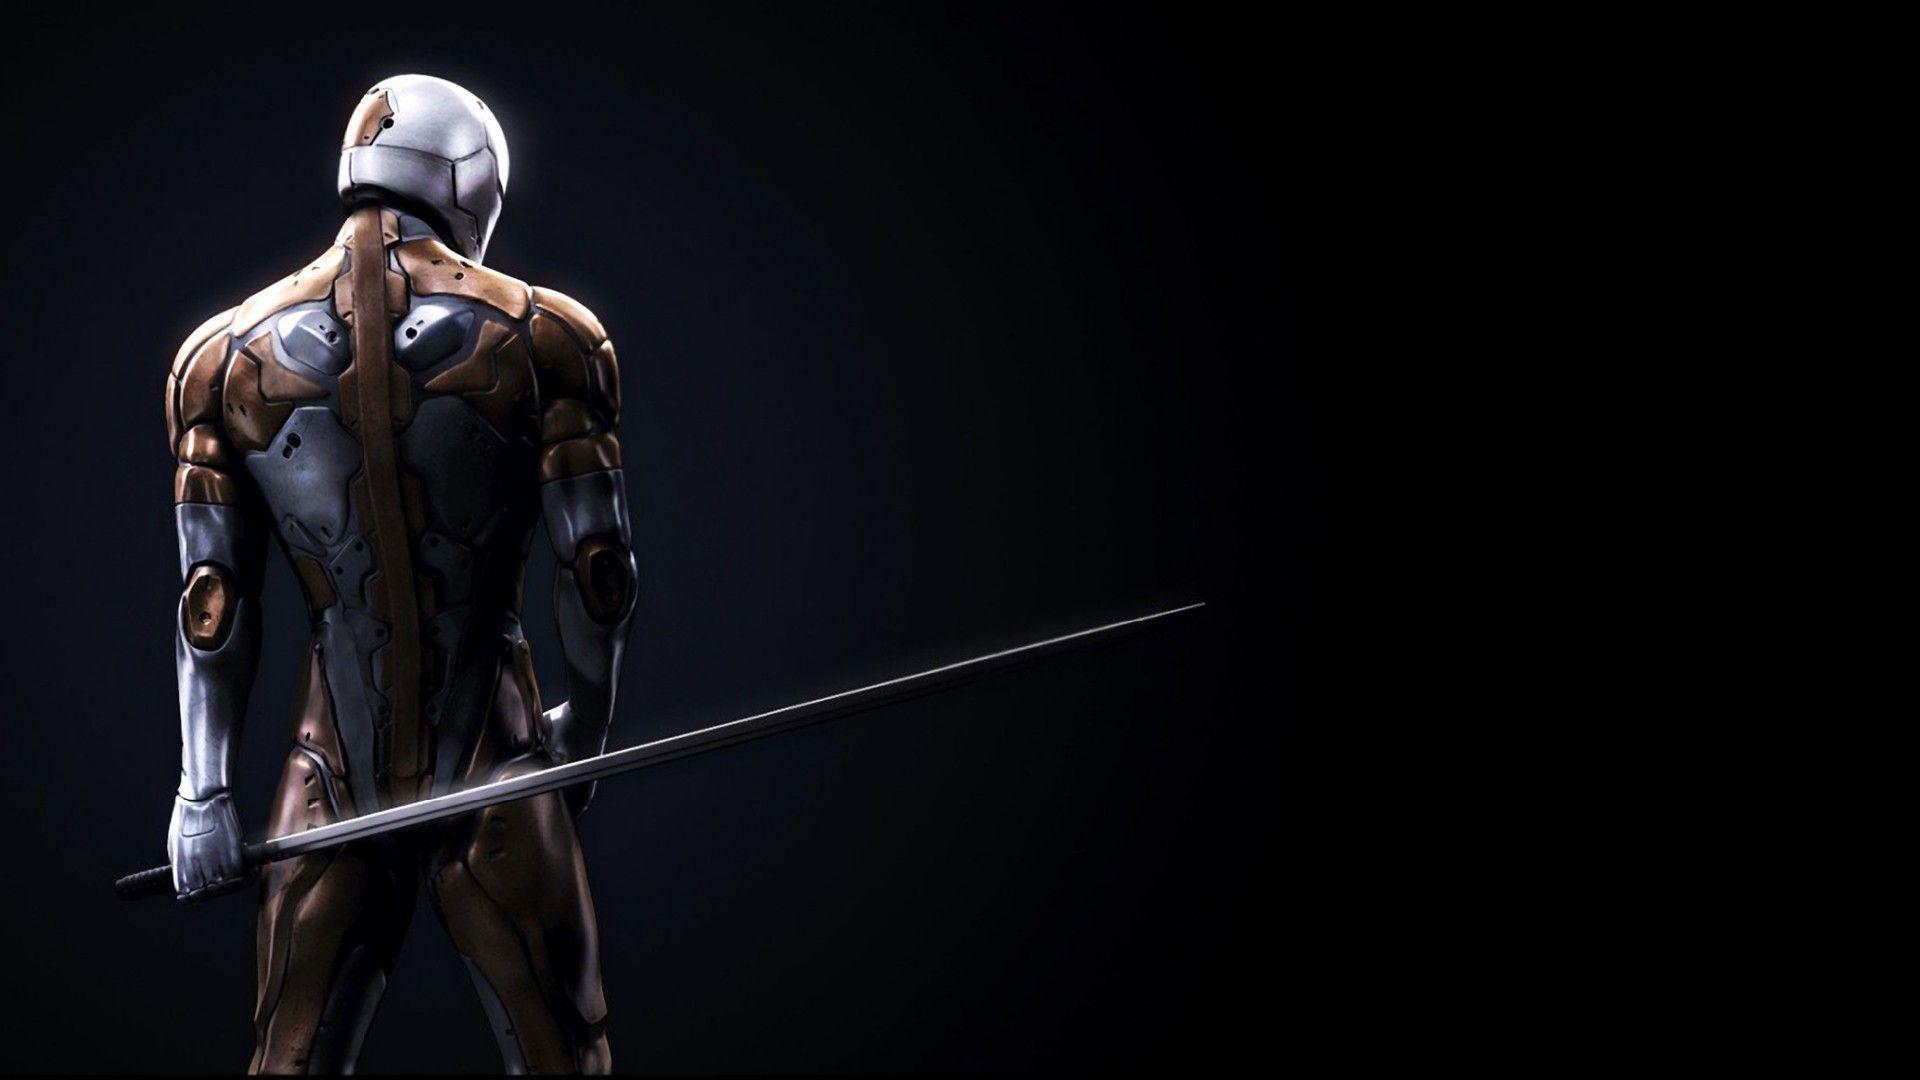 Gray Fox Wallpapers Wallpaper Cave